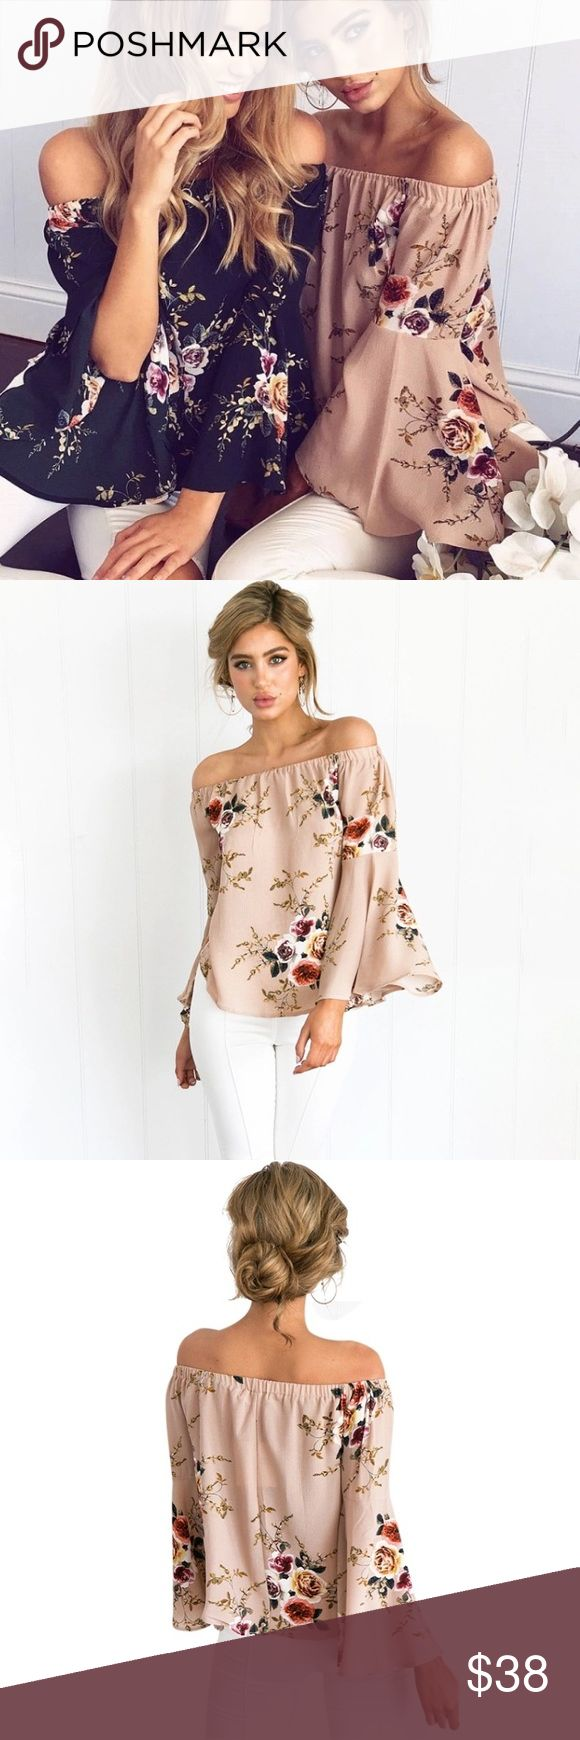 New! Nude Floral Off The Shoulder Top NWT Boutique Item. This nude top features an off the shoulder style, relaxed silhouette, elastic at the shoulders, and a floral pattern design. Pair this top with some high waisted distressed denim and mules. Measurements: Small Size 0-4, Medium Size 6-8, Large Size 10-12 Material: Polyester Color: Nude & Floral Tops Blouses